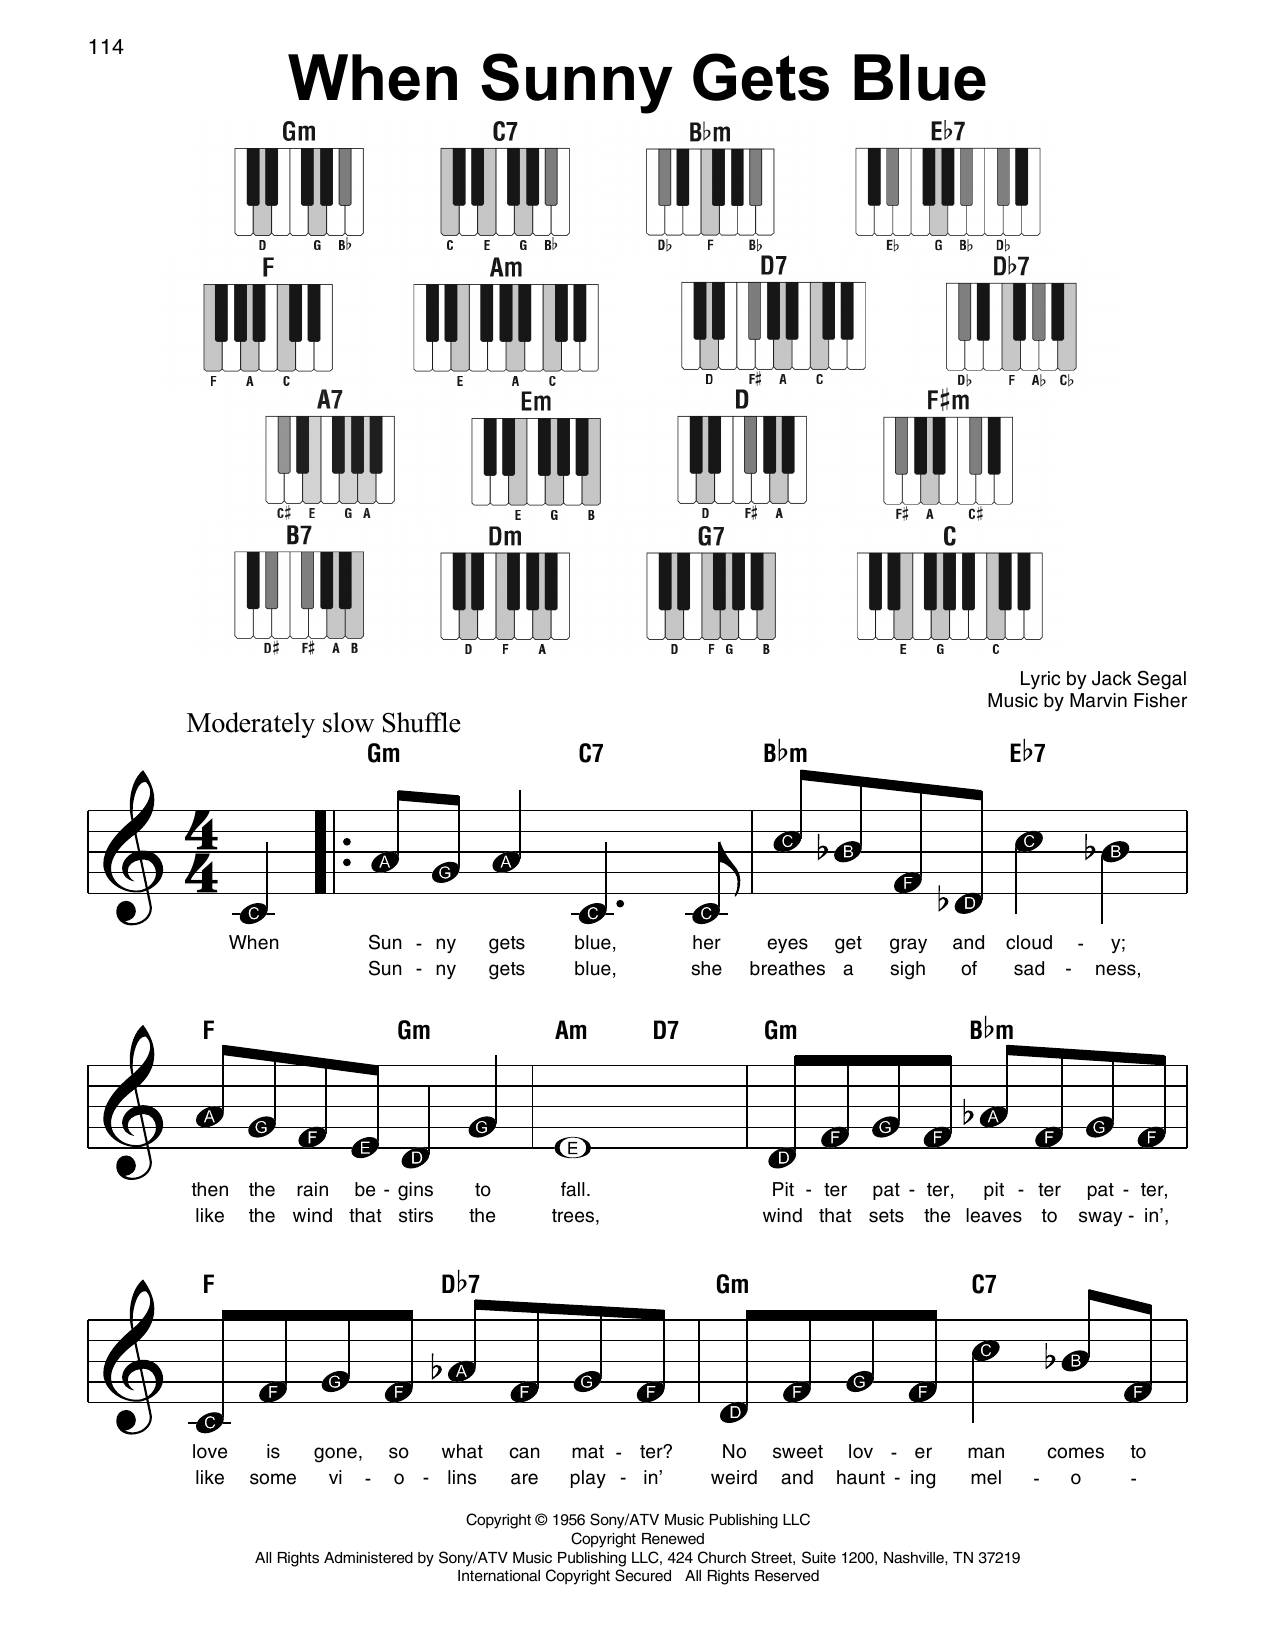 When Sunny Gets Blue Sheet Music